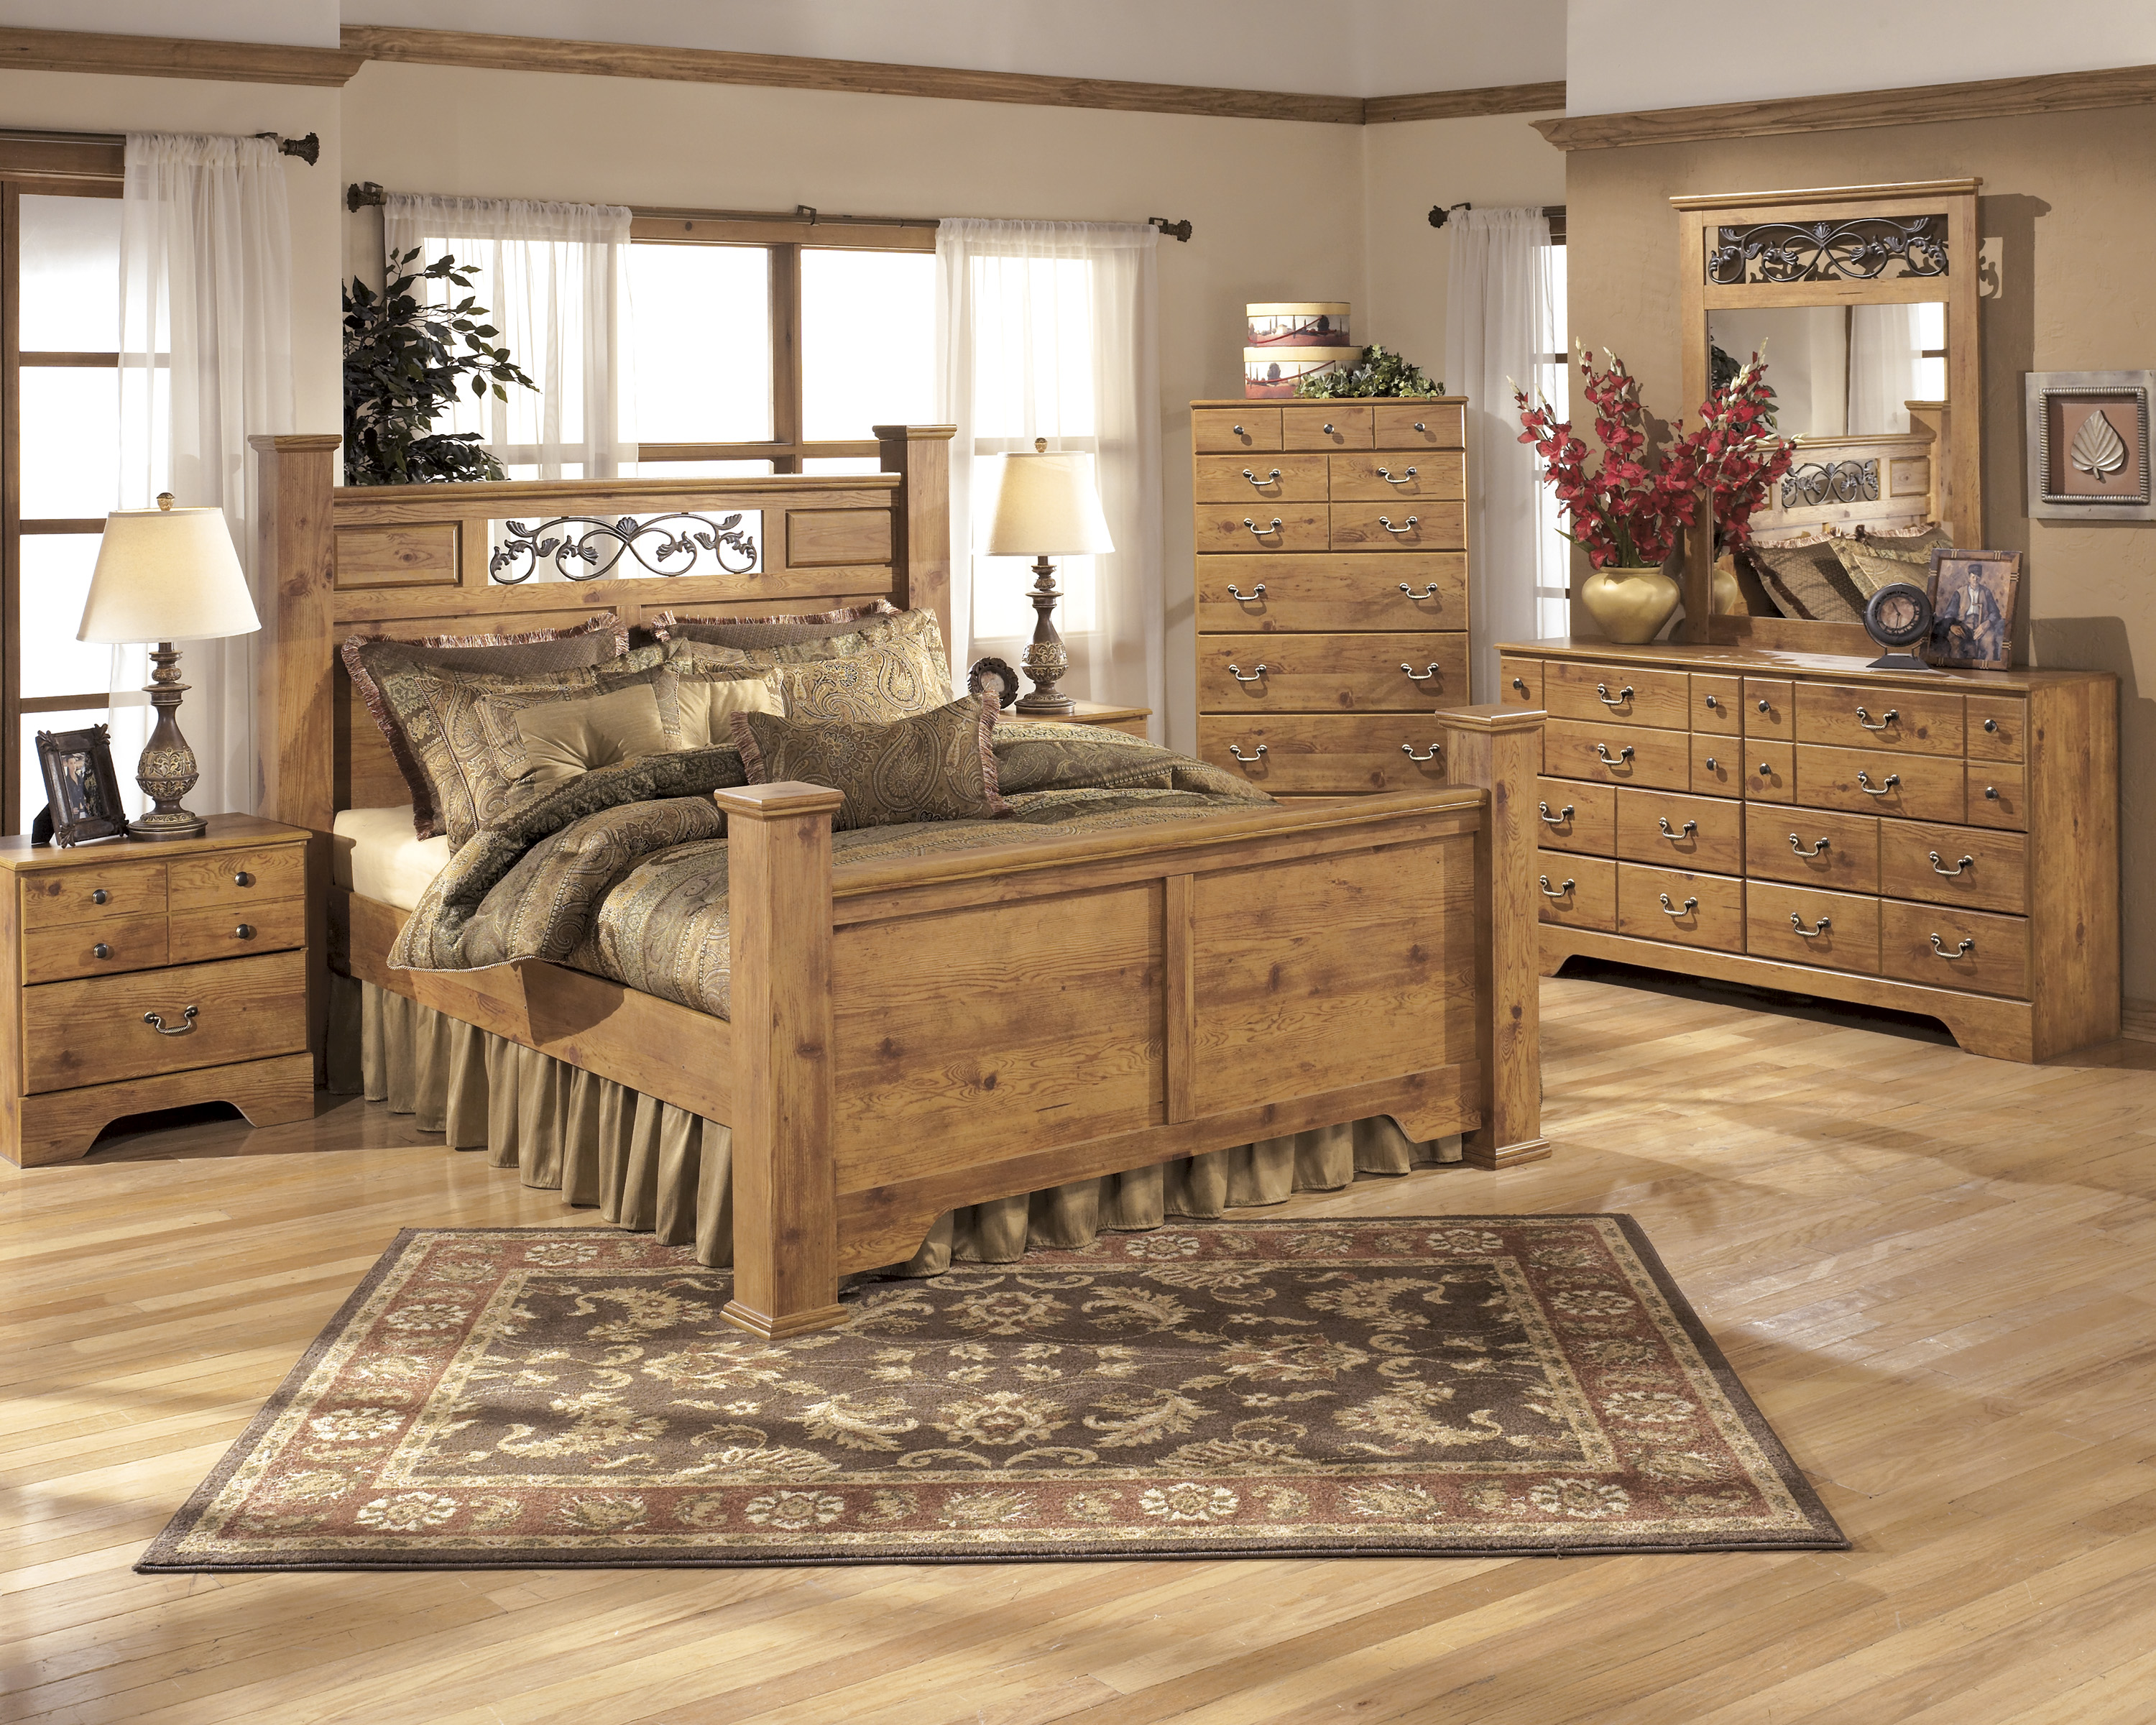 Bittersweet King Poster Bed, Dresser,  Mirror, Chest & Nightstand  / $34.99 A Week